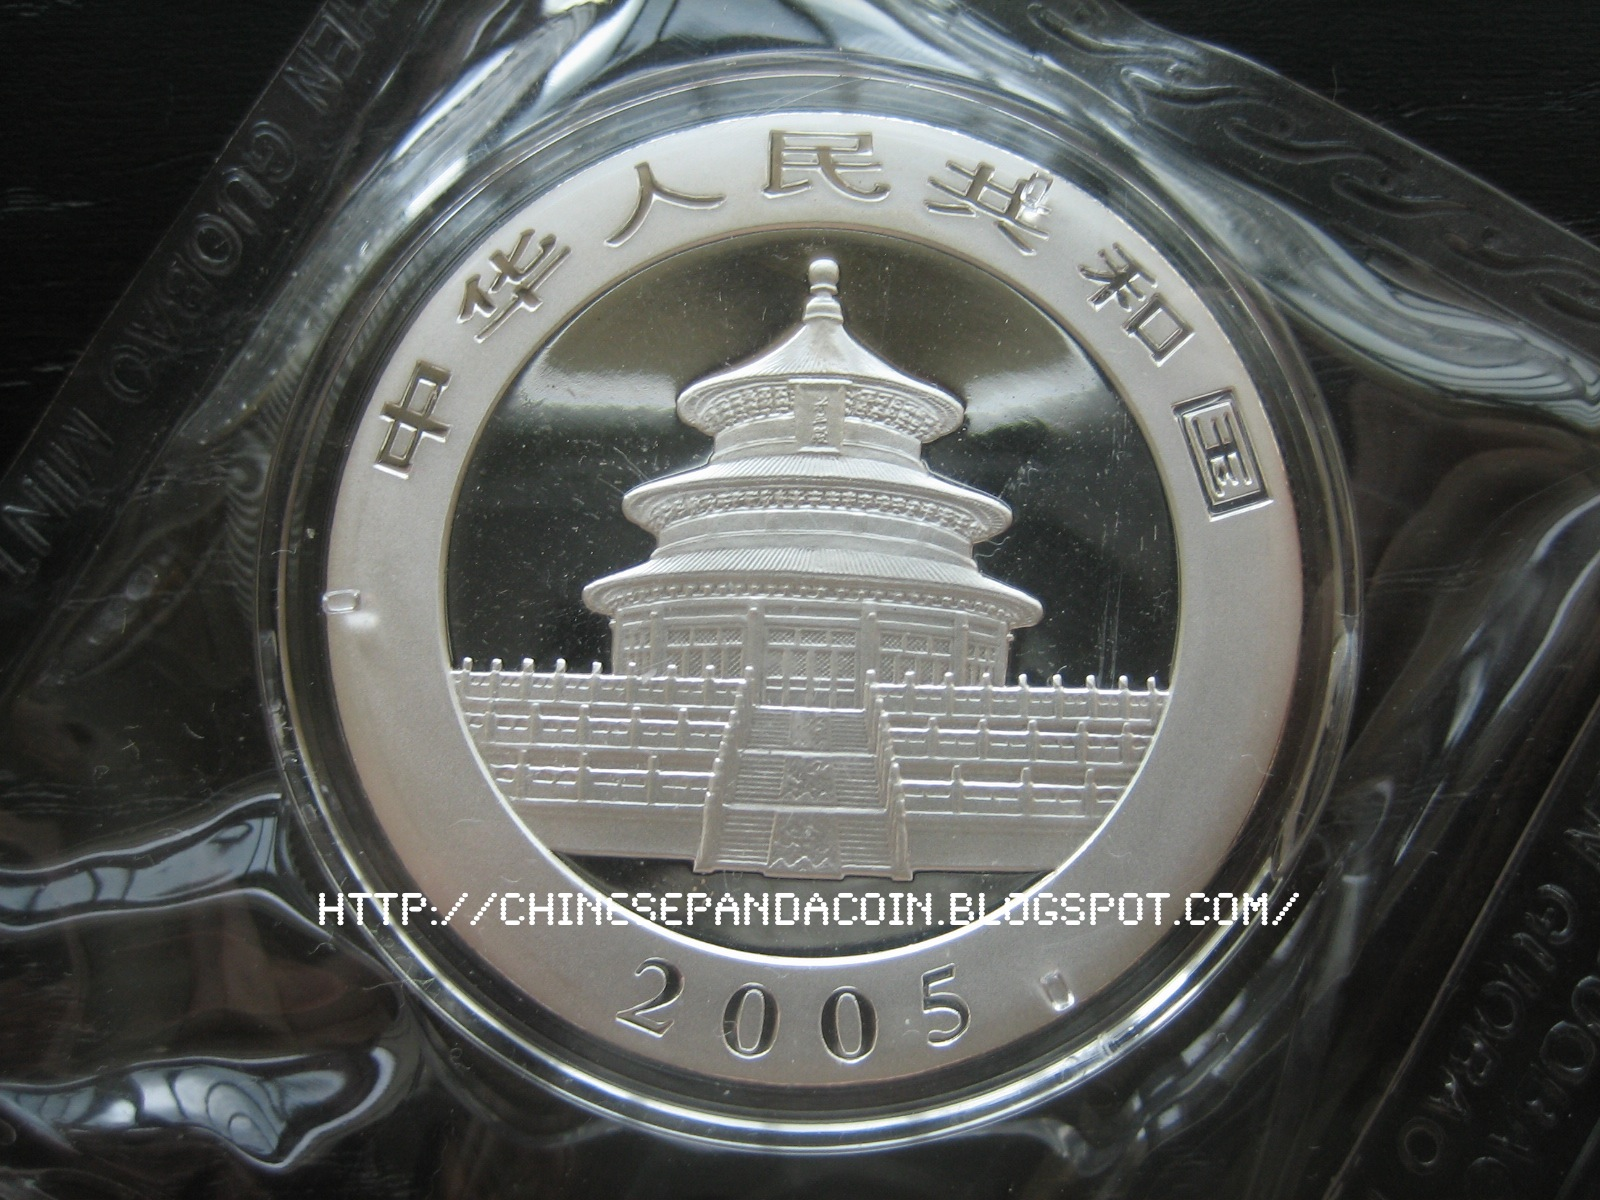 2005 Chinese Panda 1 oz Silver Coin Double Sealed